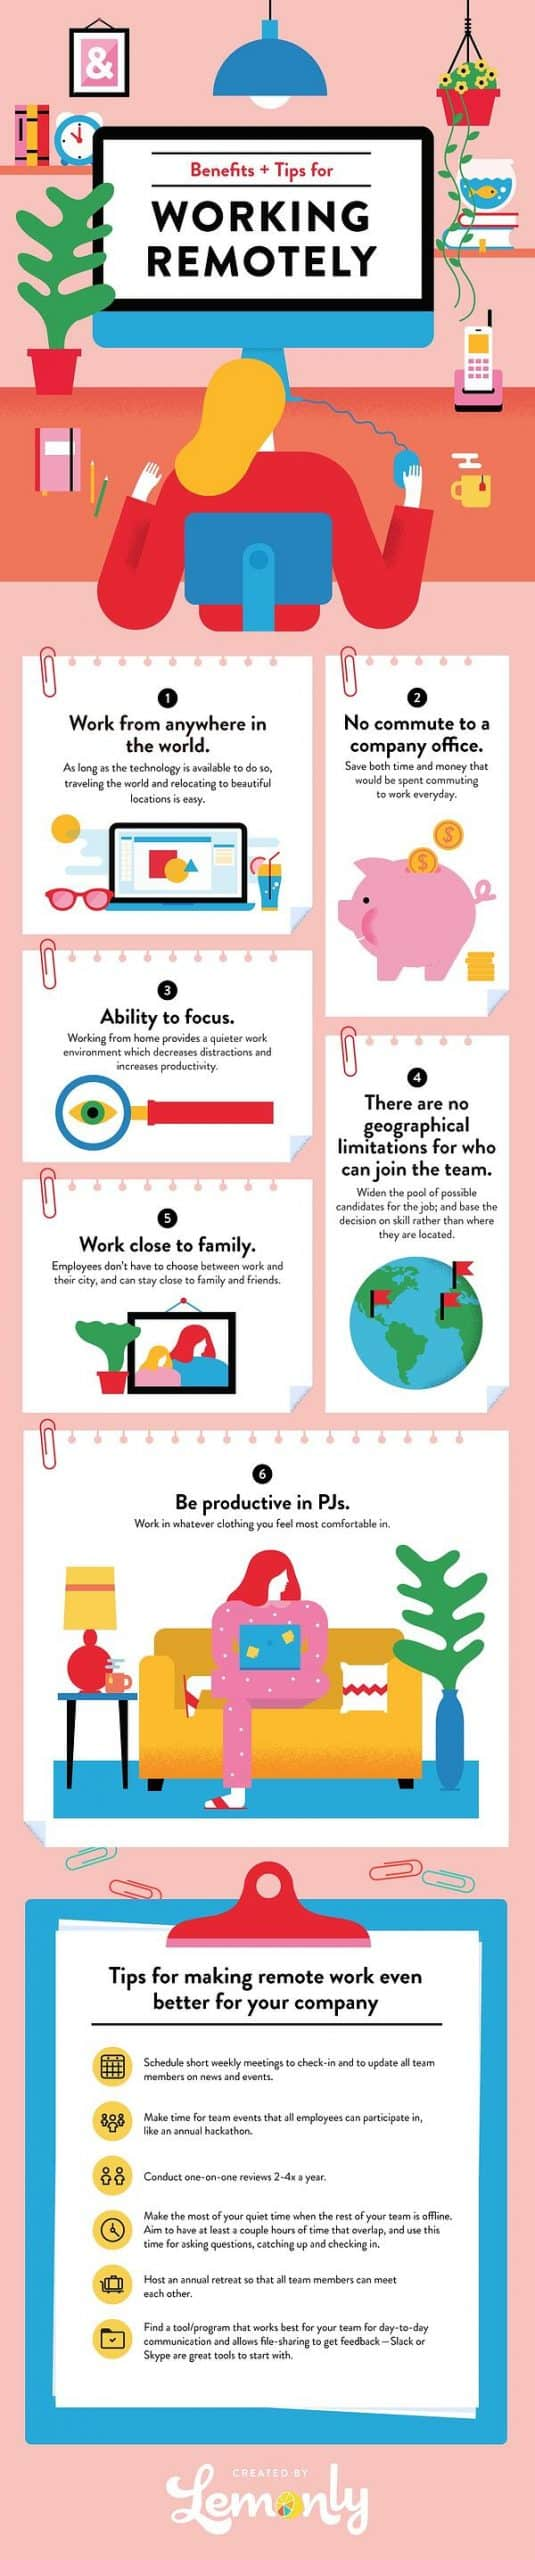 Tips-and-Tricks-for-working-from-home-remote-work-infographic-lemonly